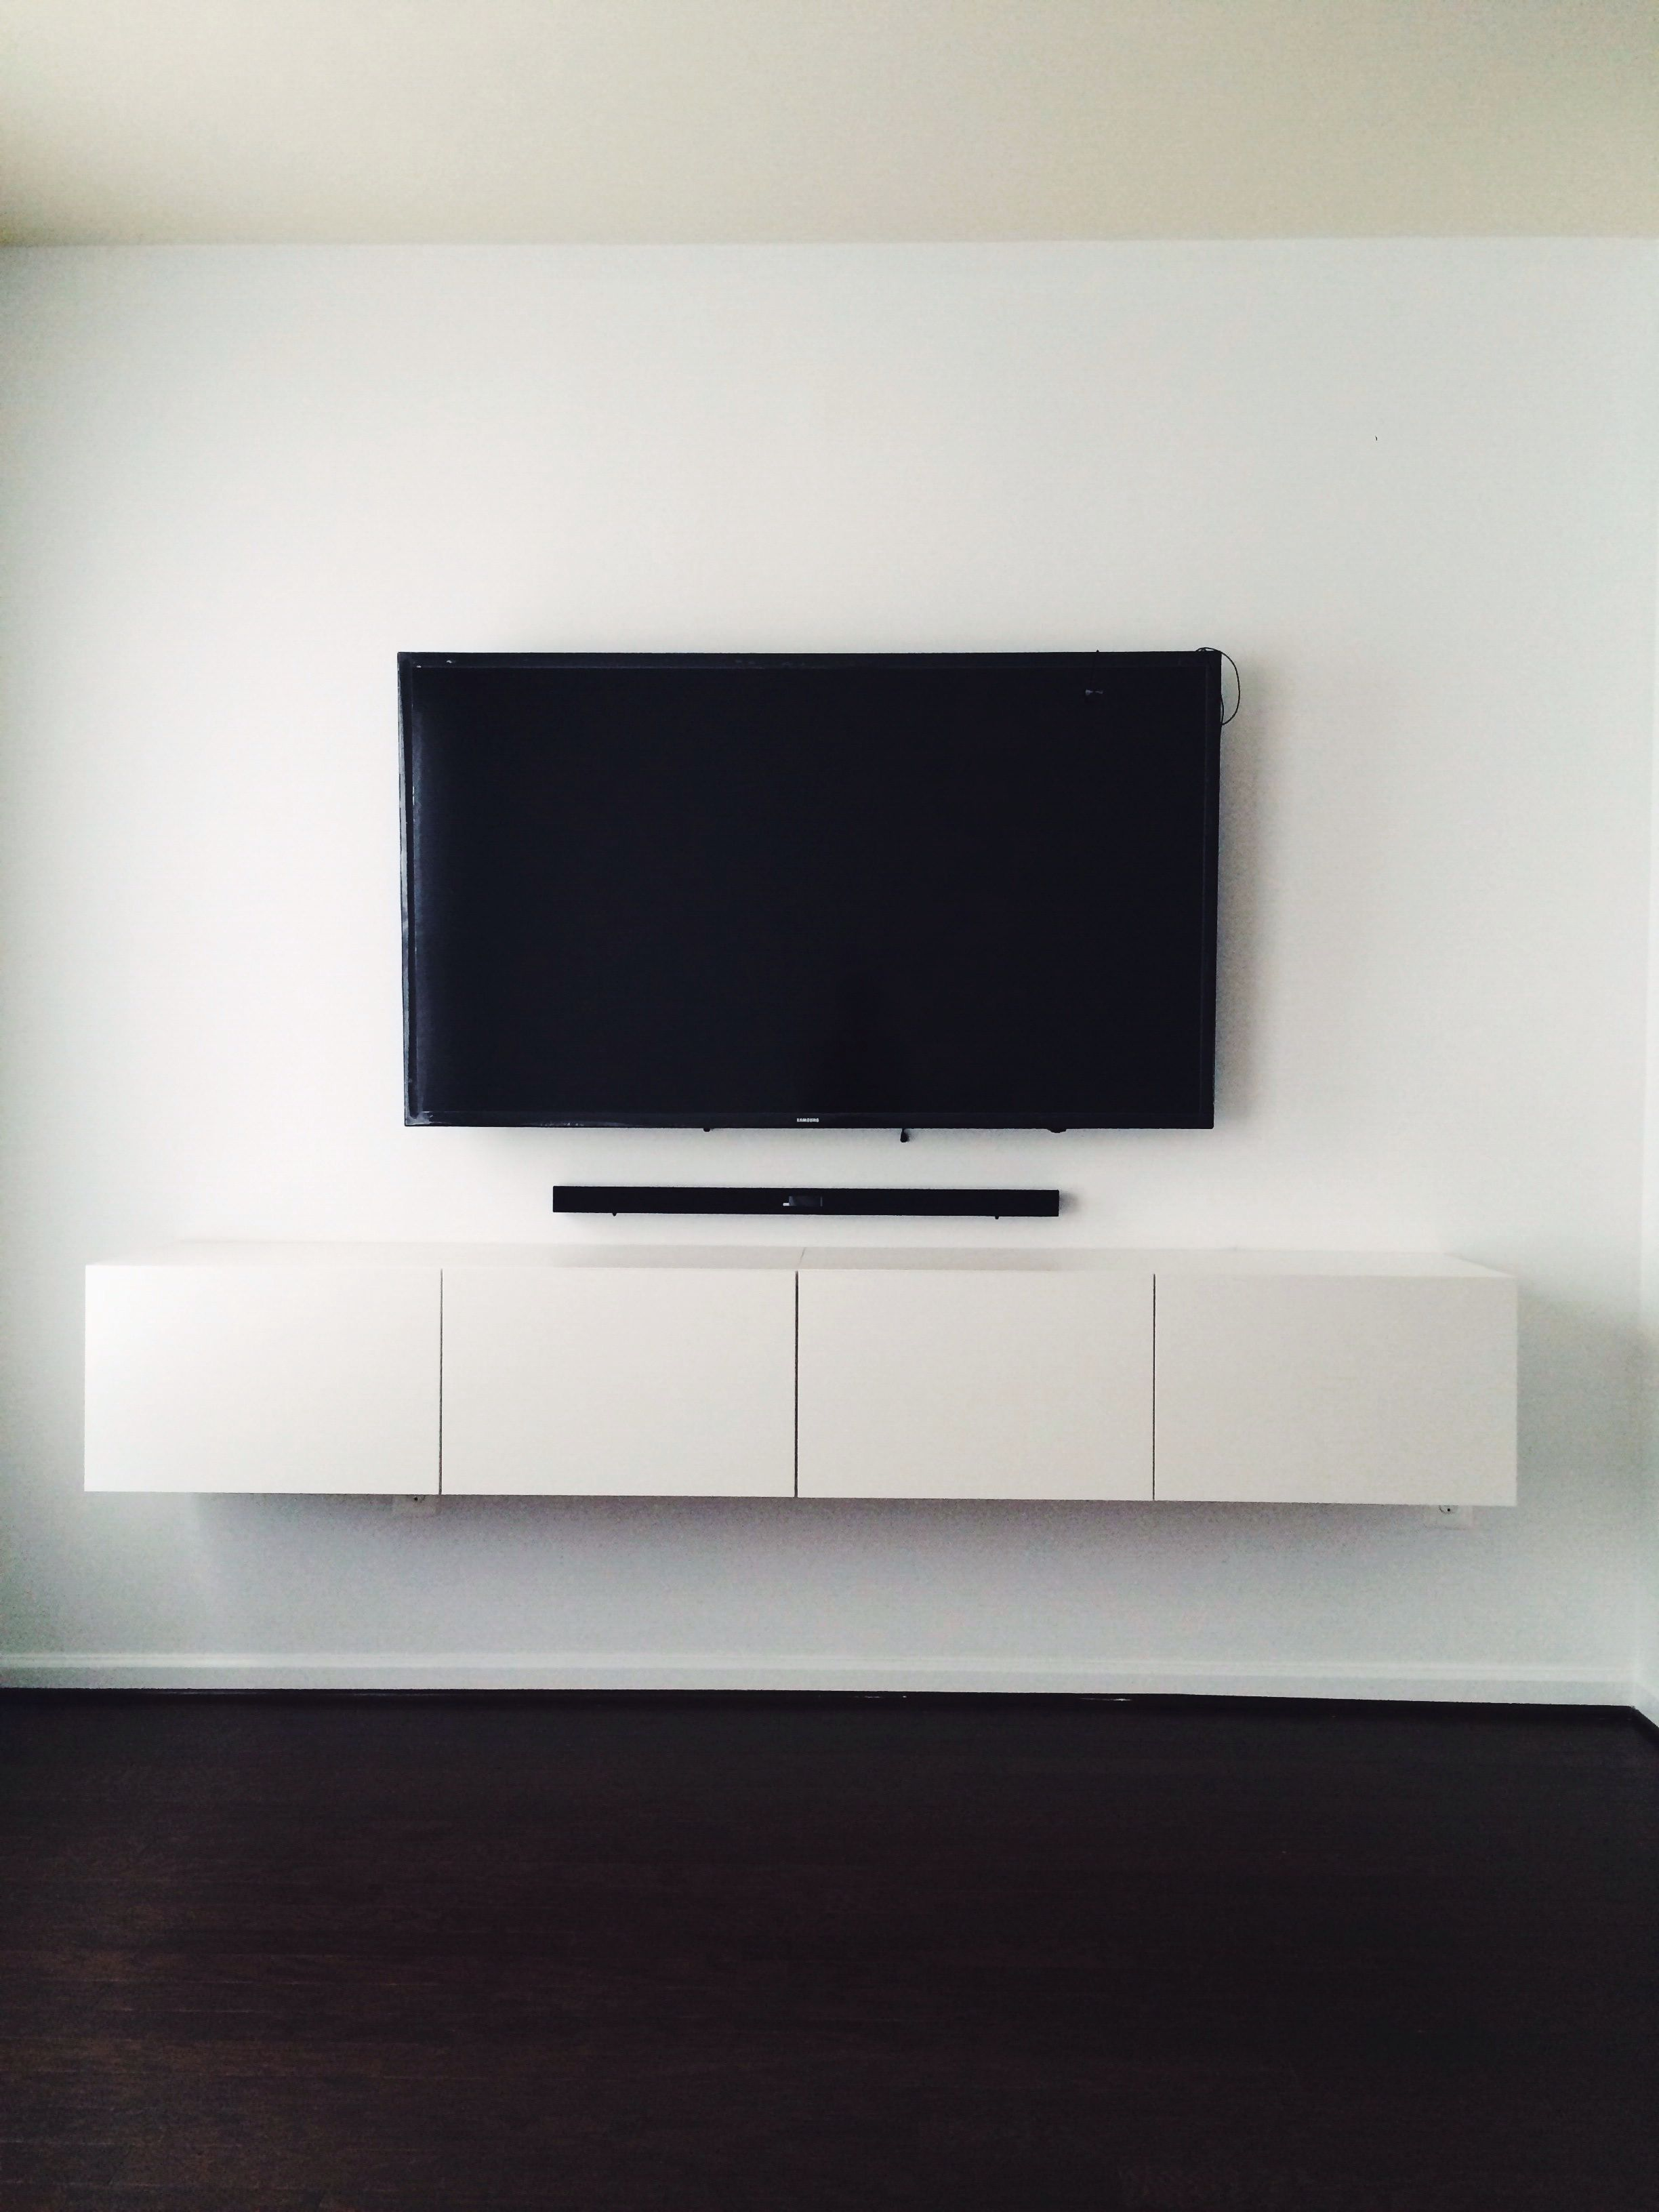 How High To Mount Tv On Wall In Bedroom Ikea BestÅ Media Console Mounted Tv With Hidden Wires